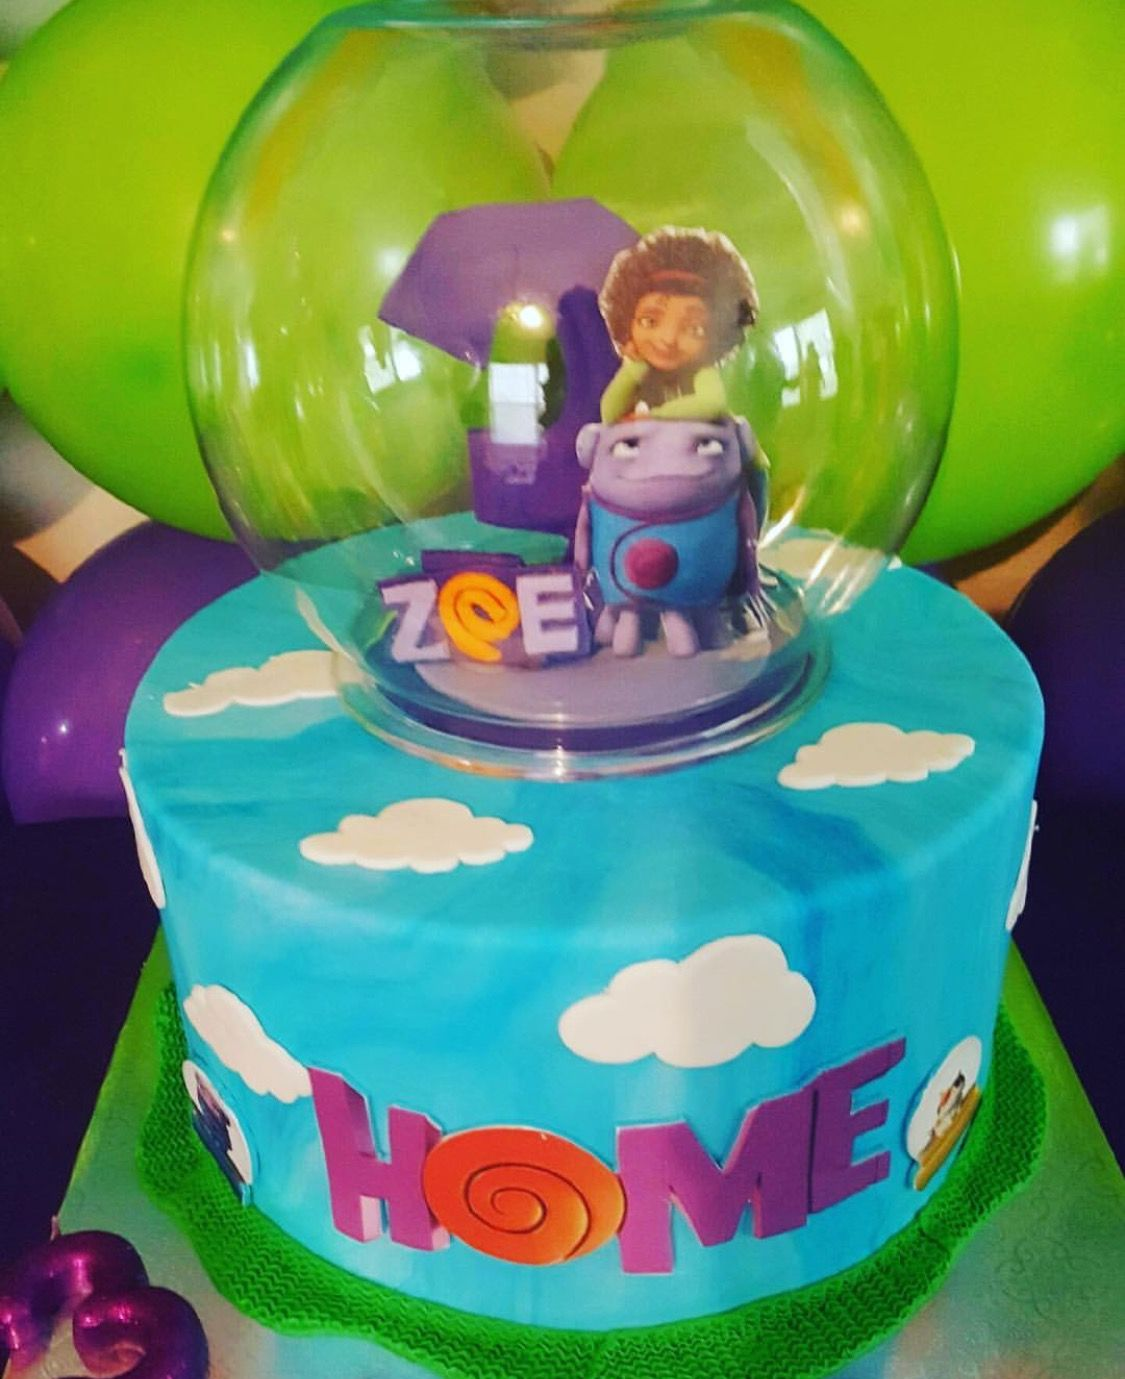 Dreamworks Home Boov Party. Home Cake.